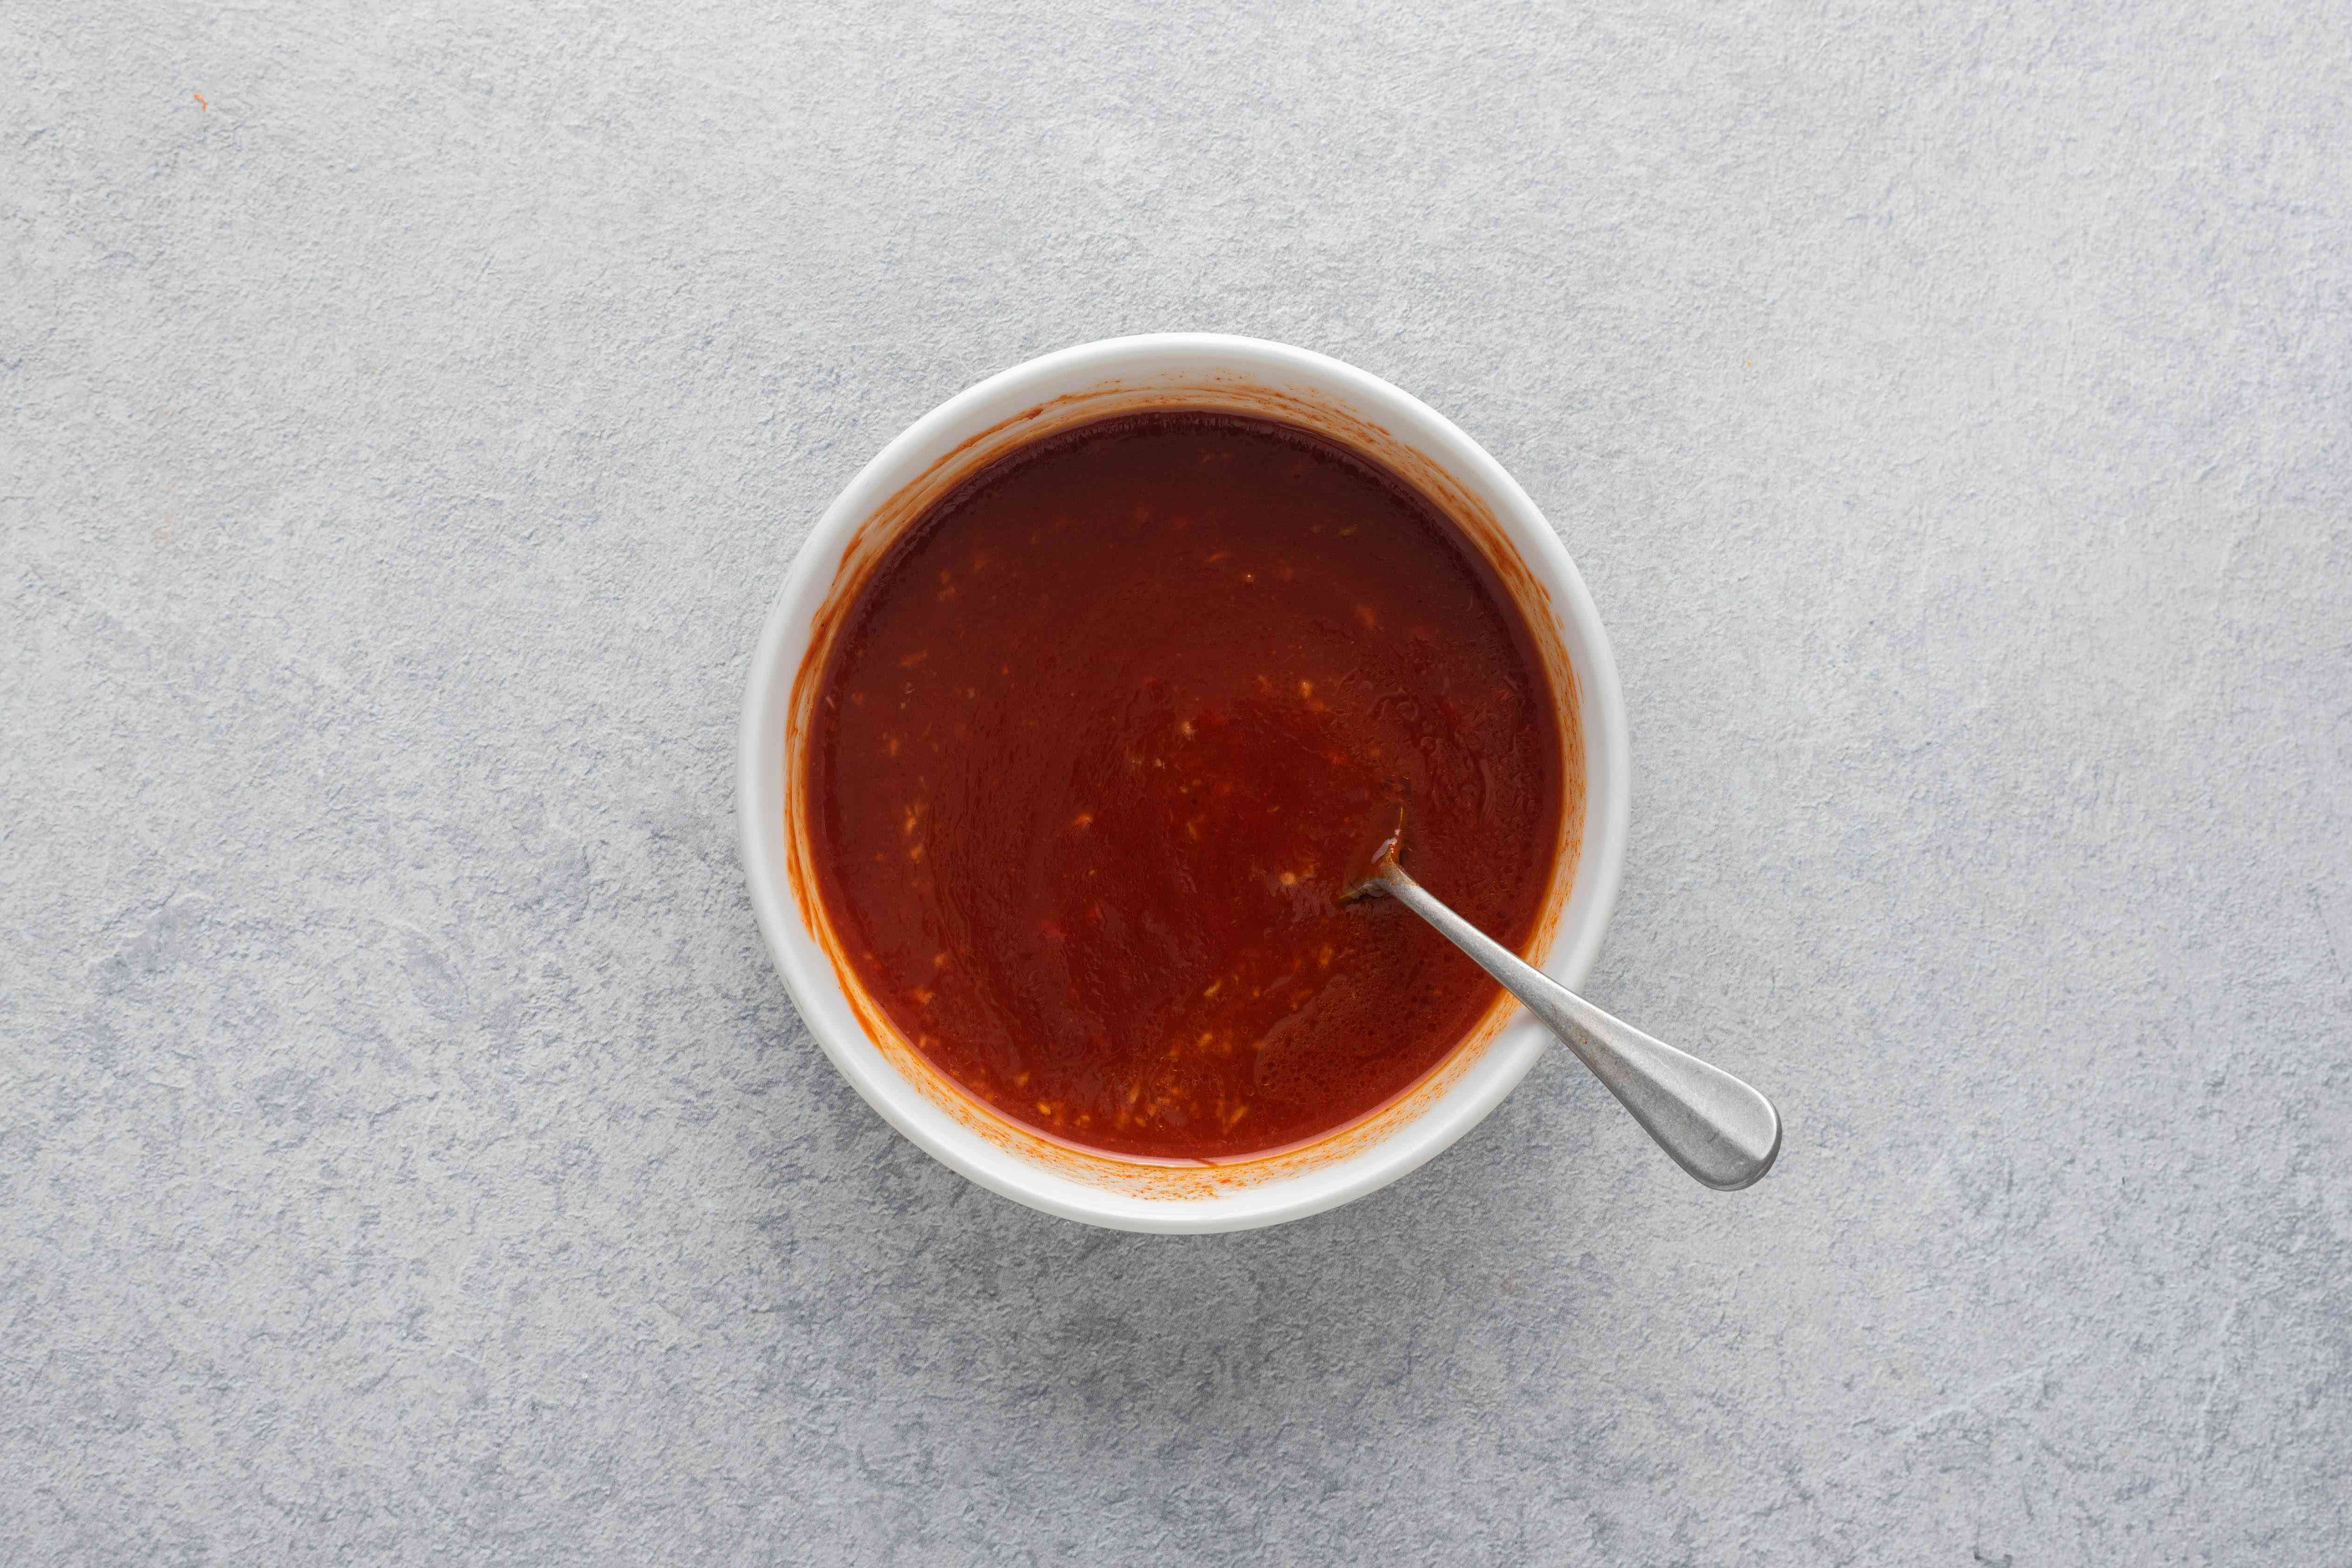 Spicy and Sweet Korean Chogochujang Dipping Sauce ingredients together in a bowl